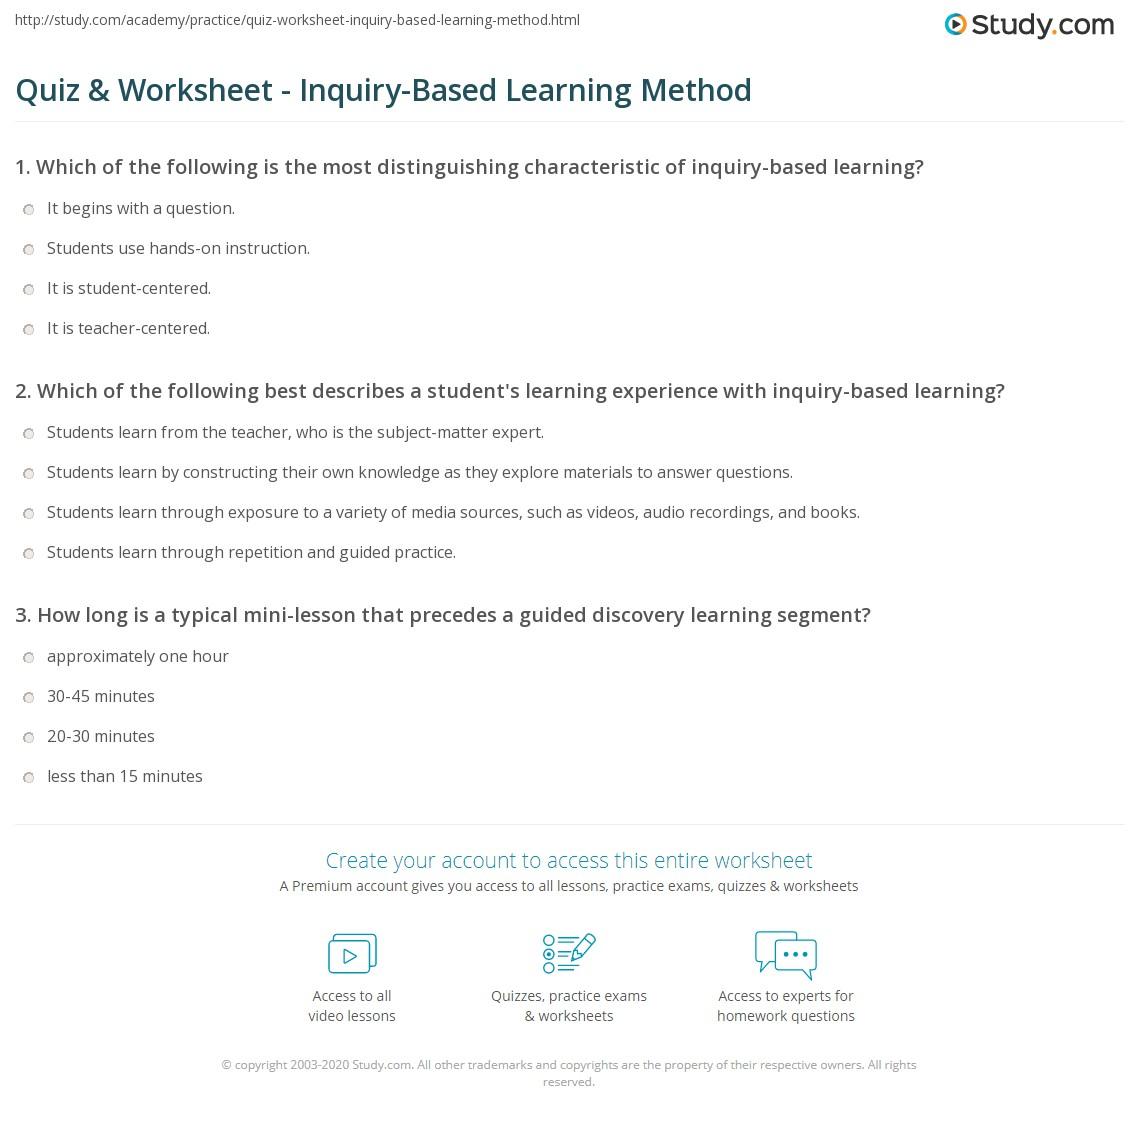 image regarding Learning Styles Questionnaire Printable identify Quiz Worksheet - Inquiry-Based mostly Mastering Solution